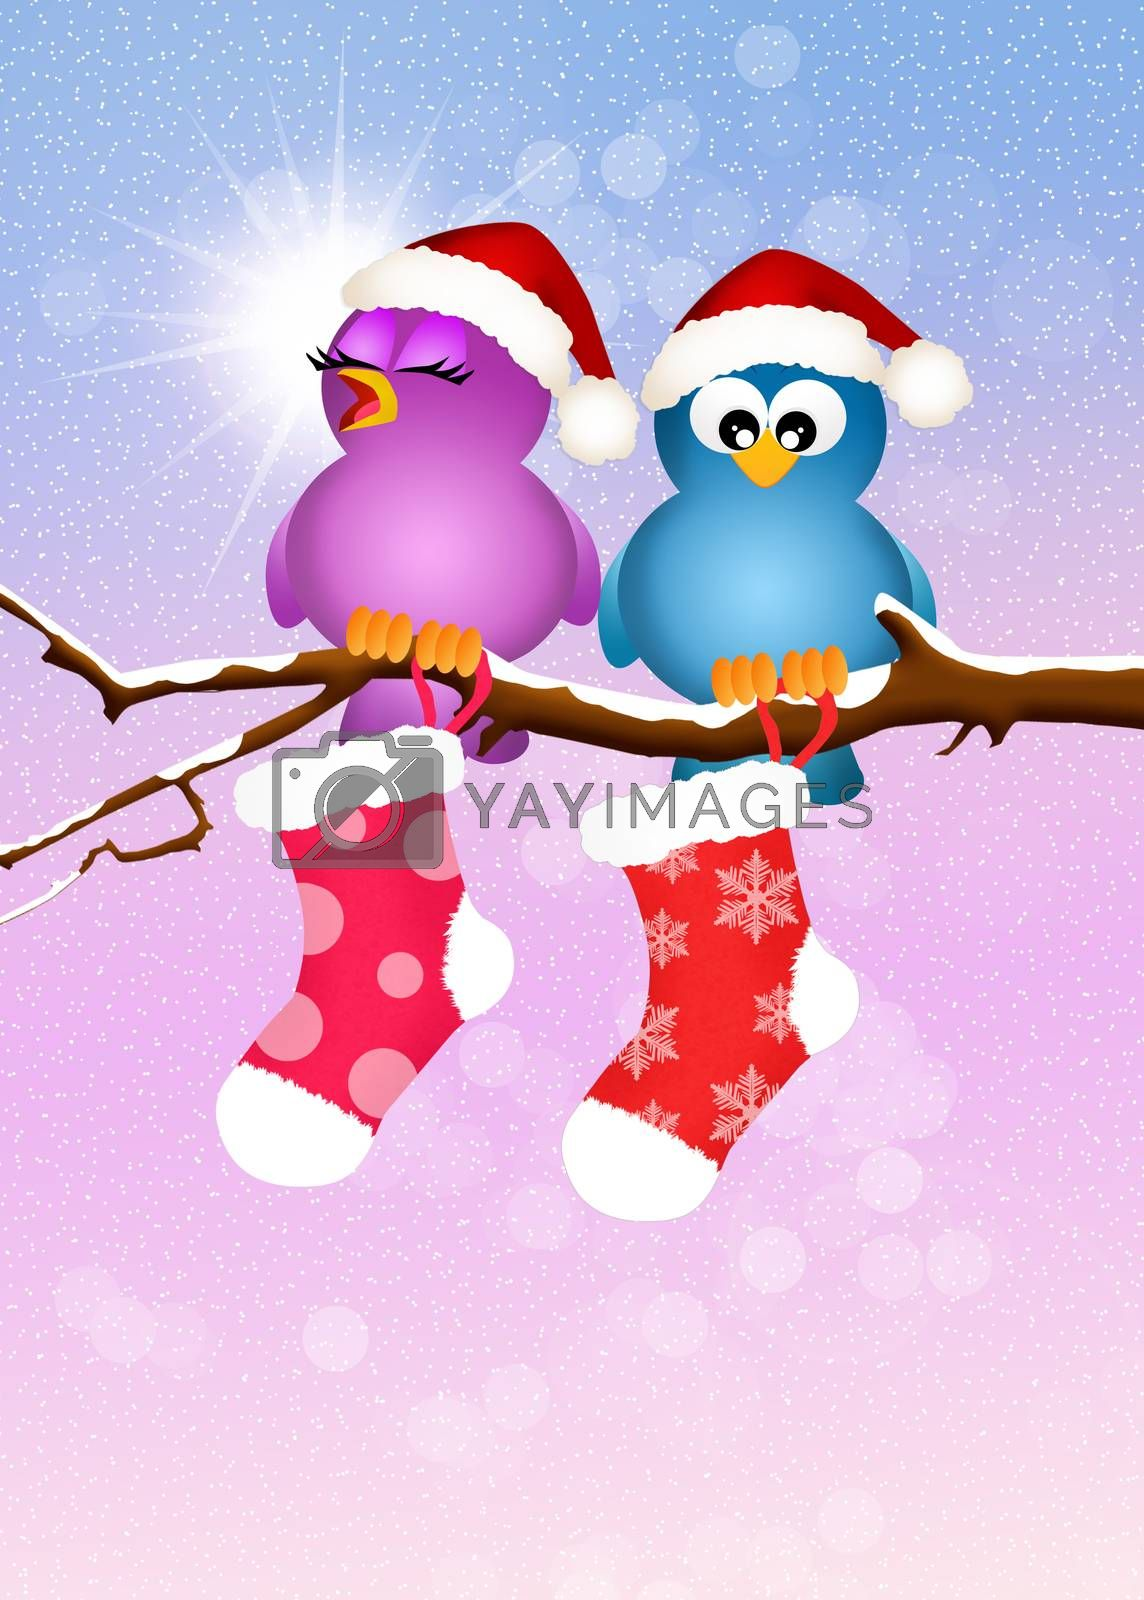 illustration of birds with Christmas socks